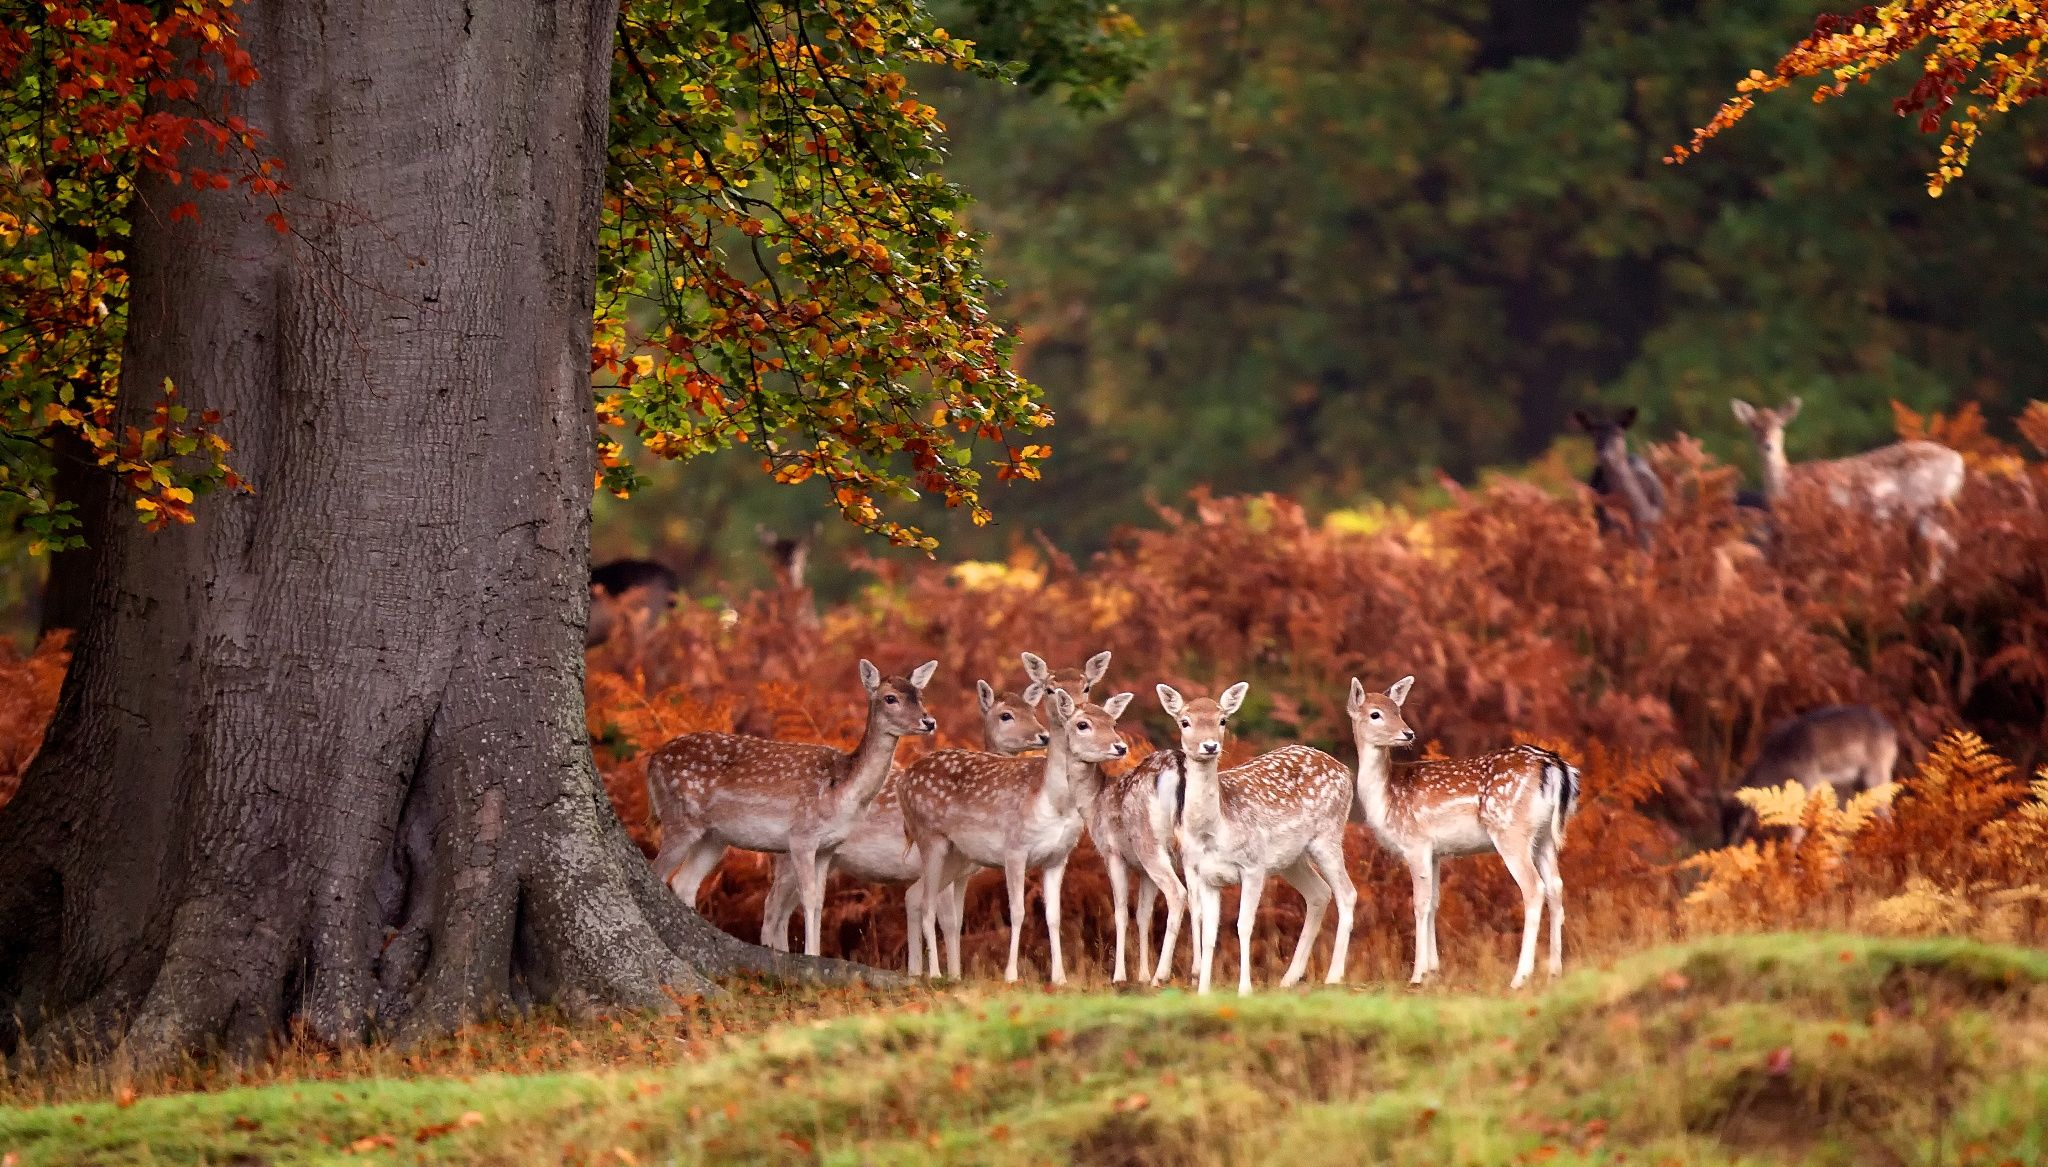 30 Awesome Animals Out And About This Autumn Deer Wallpaper Deer Photography Autumn Animals